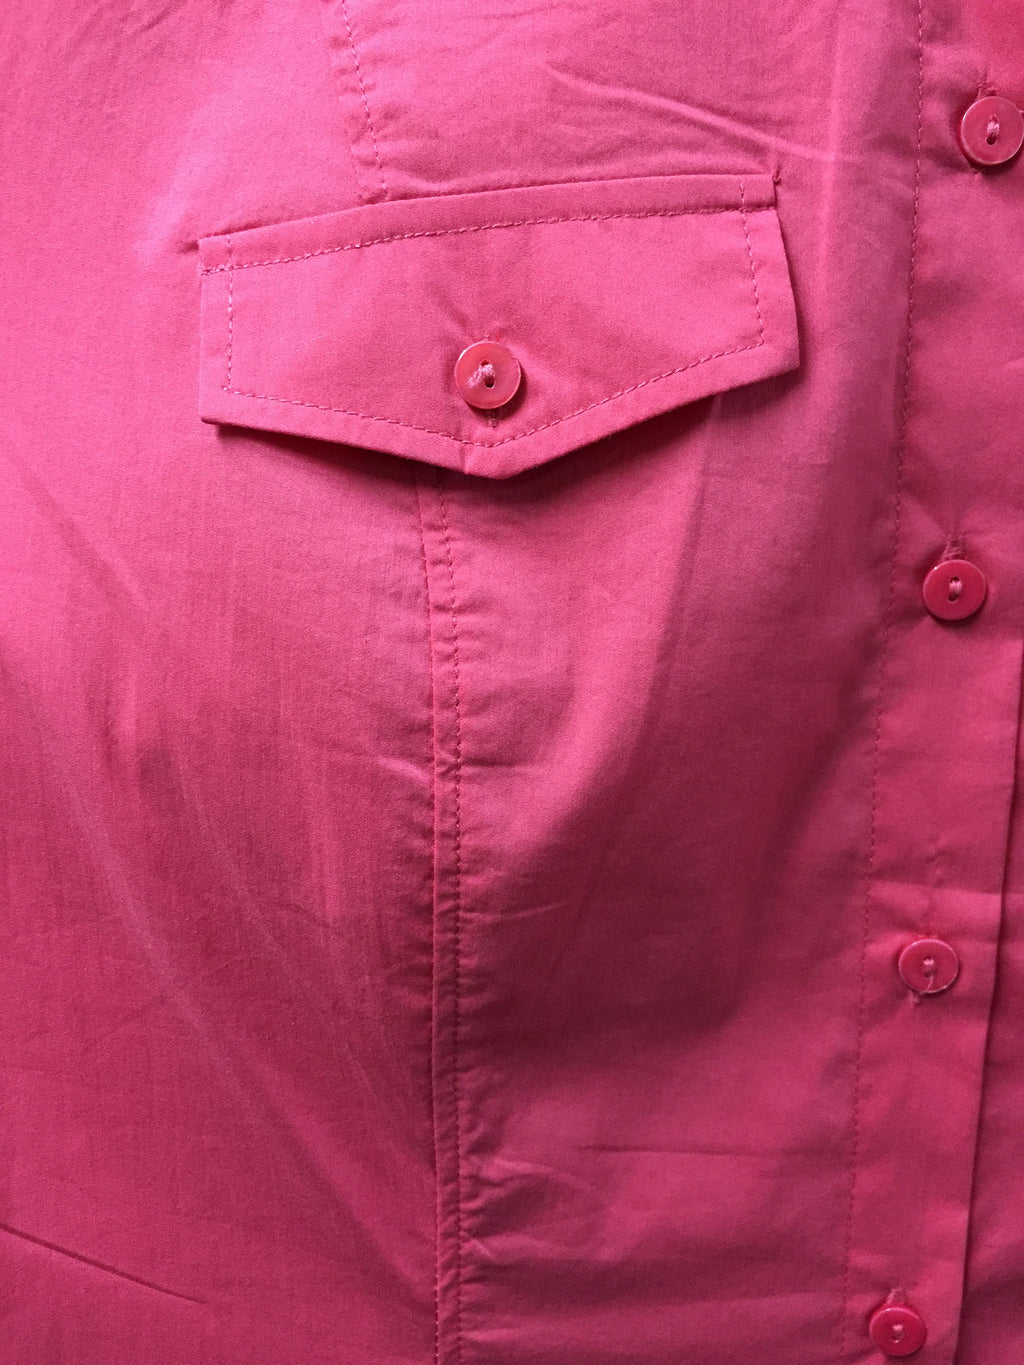 Carmine Pink Formal Stretchable Shirt